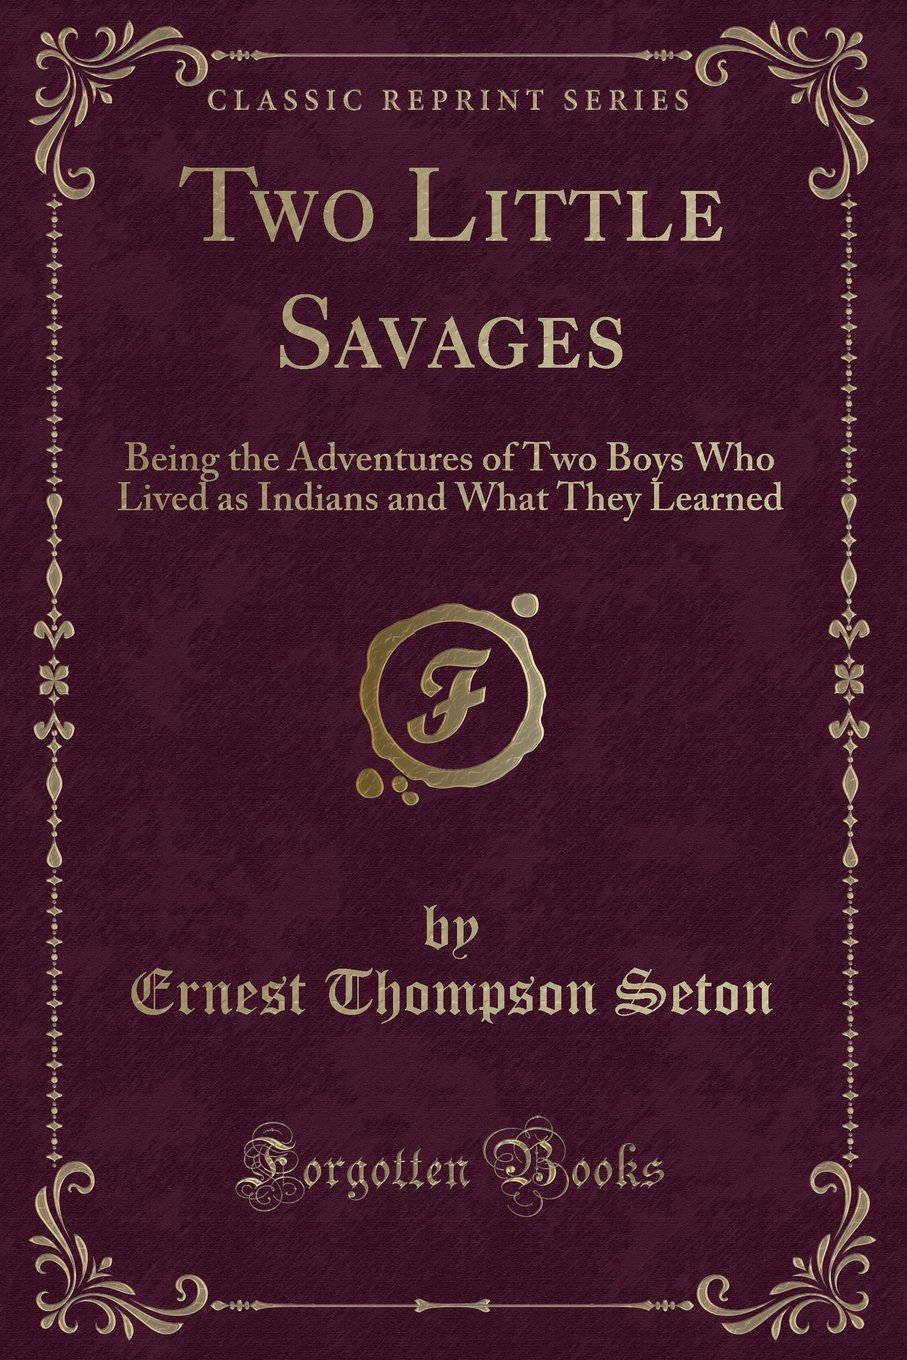 Two Little Savages: Being the Adventures of Two Boys Who Lived as Indians and What They Learned (Classic Reprint) ebook